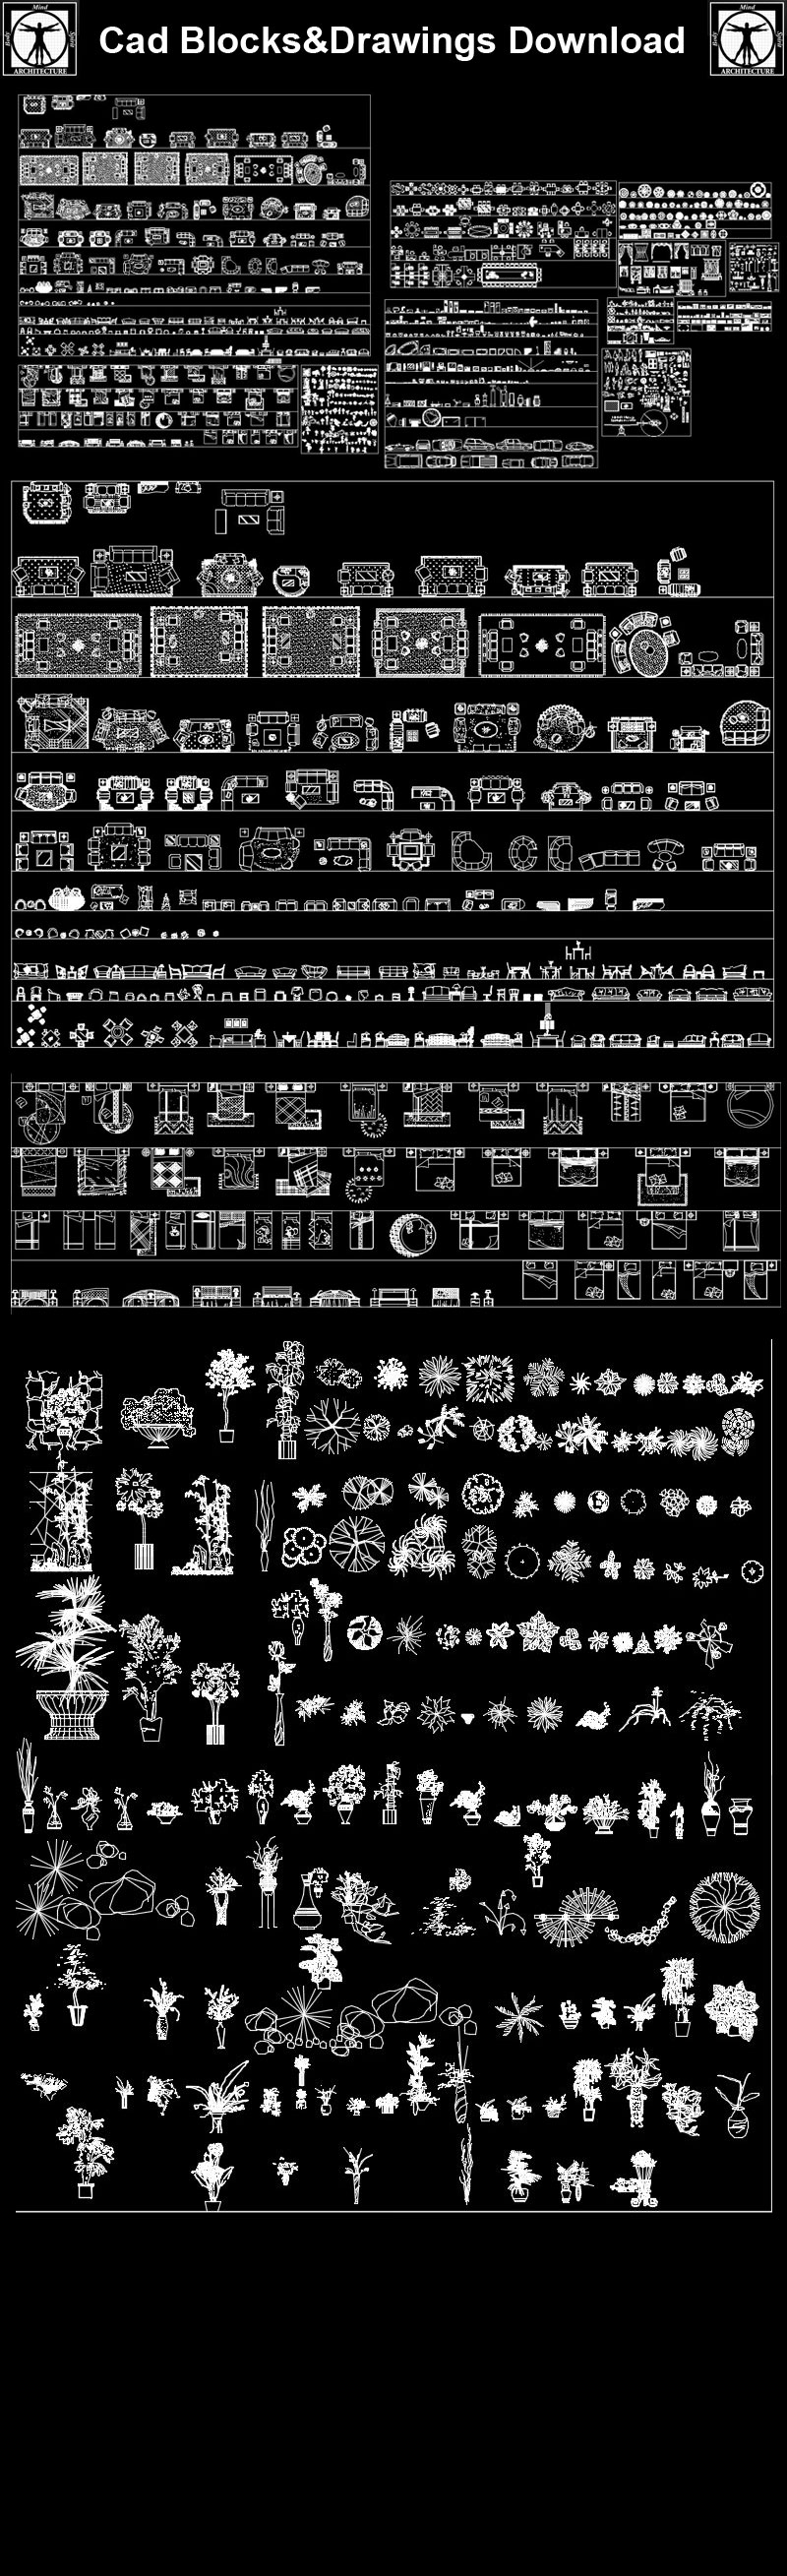 Mix Cad blocks collections】 | Free CAD Download World ...